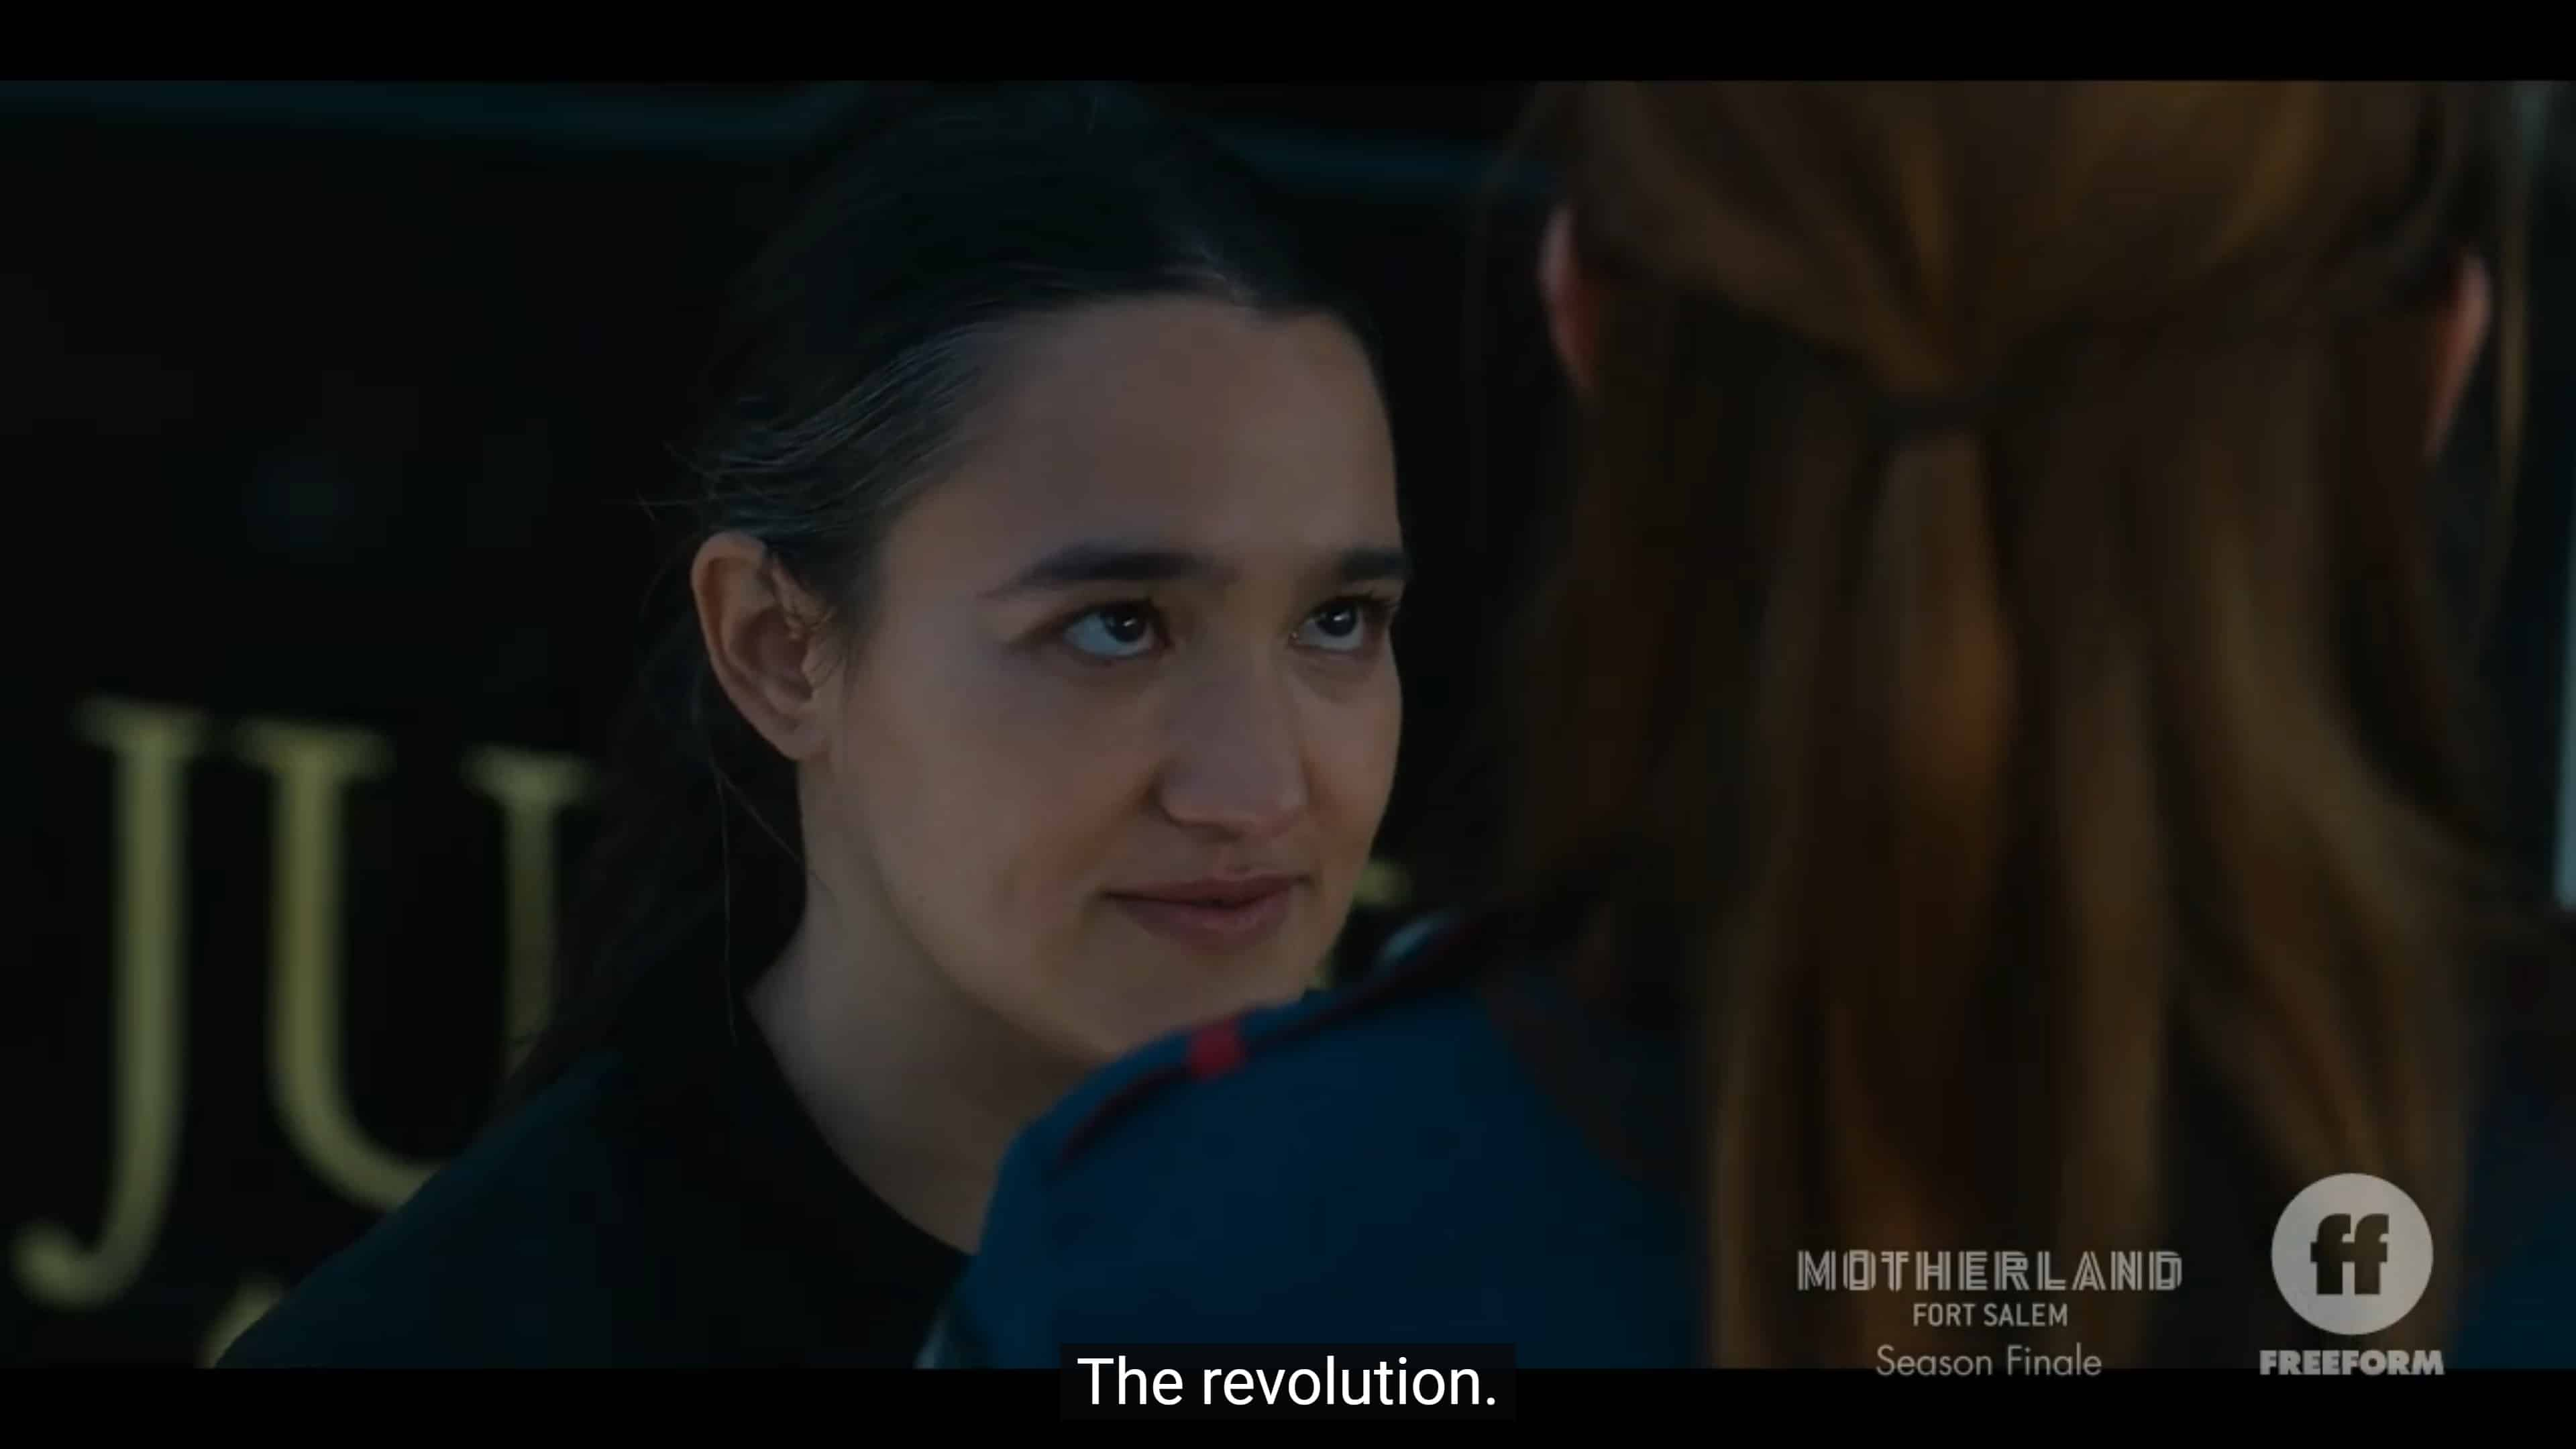 Nicte noting she believed Tally wanted a revolution